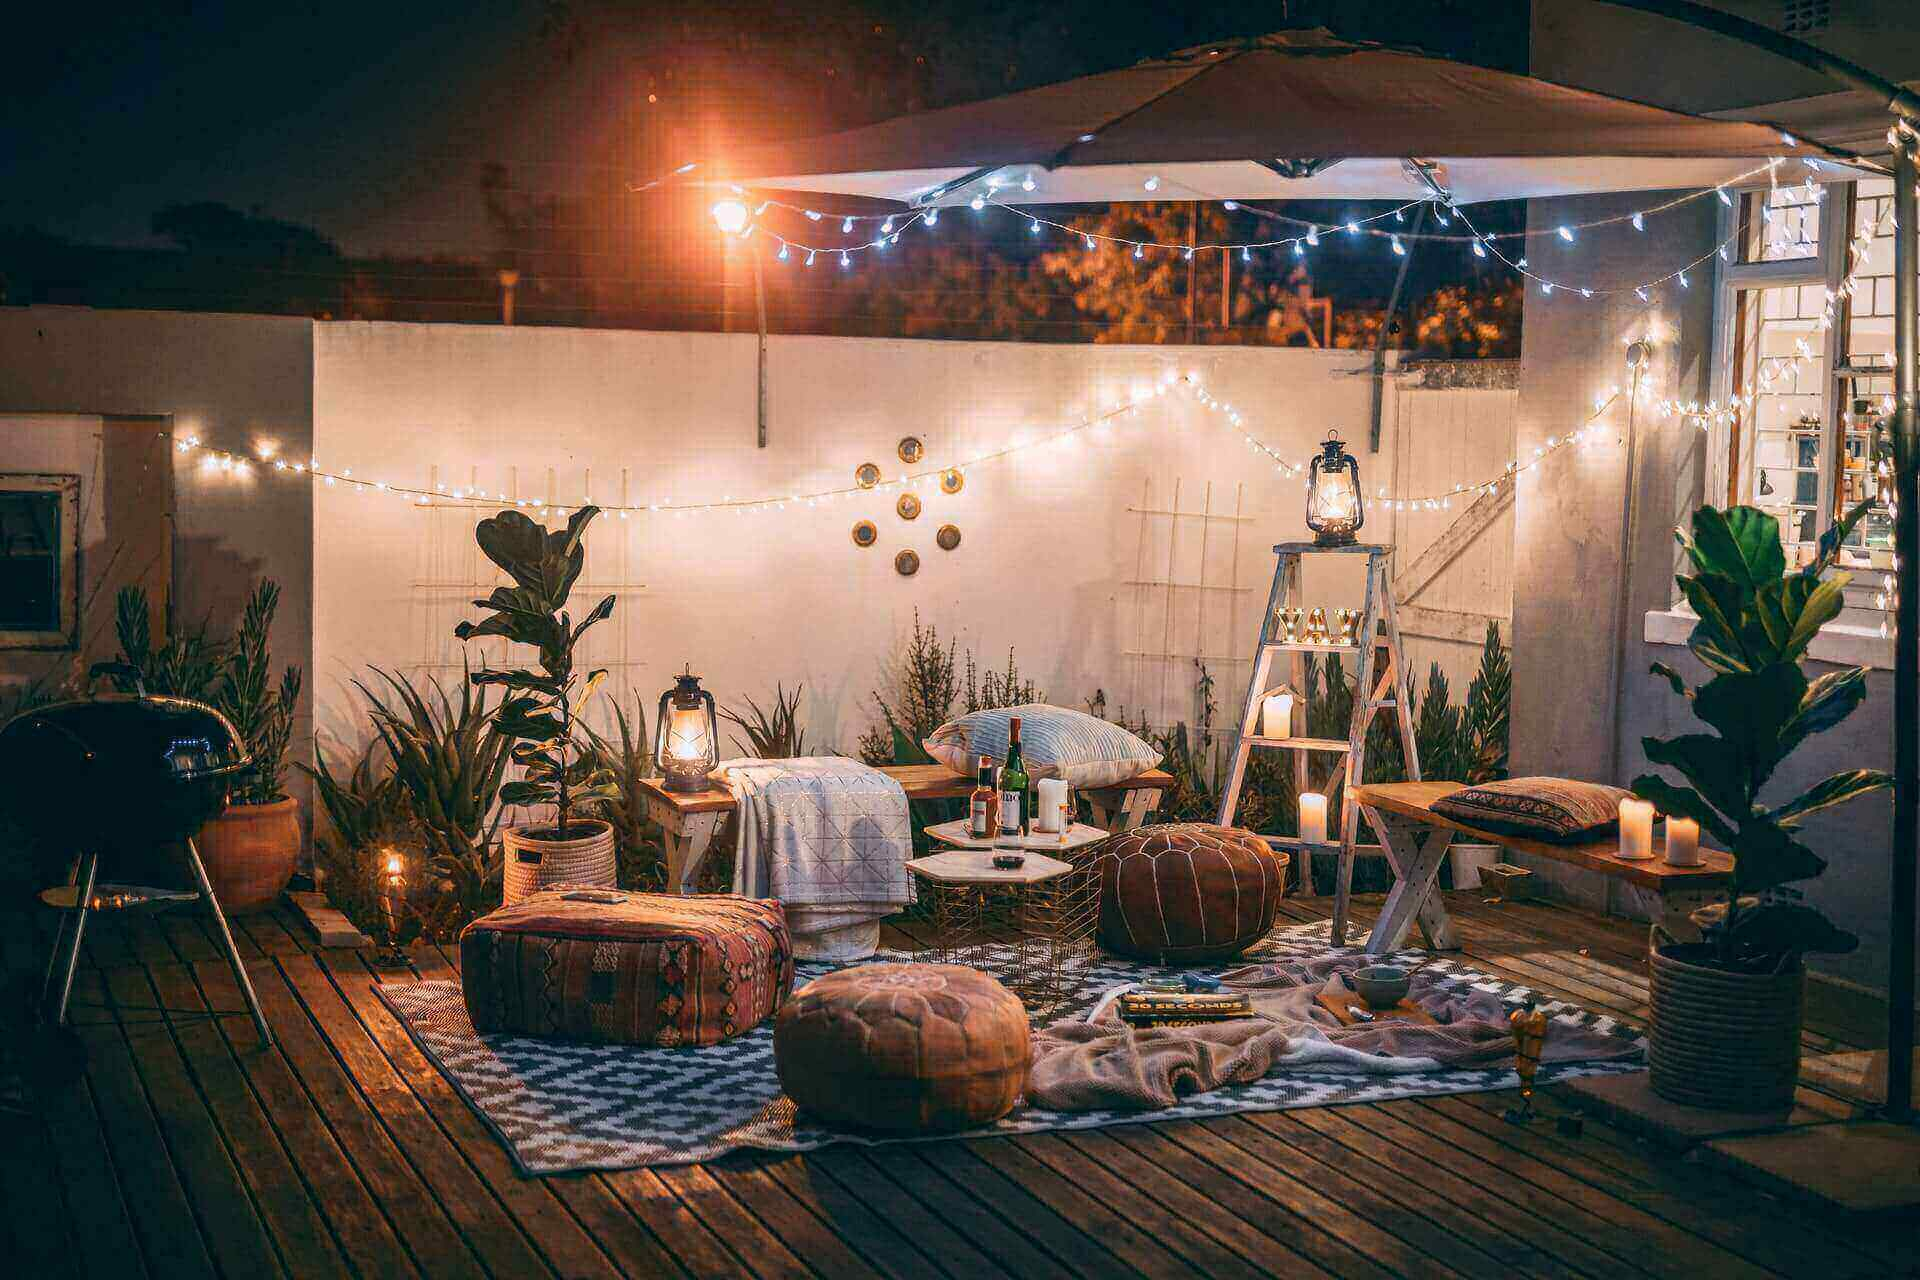 Backyrard patio - Outdoor Rugs That Drain Fast